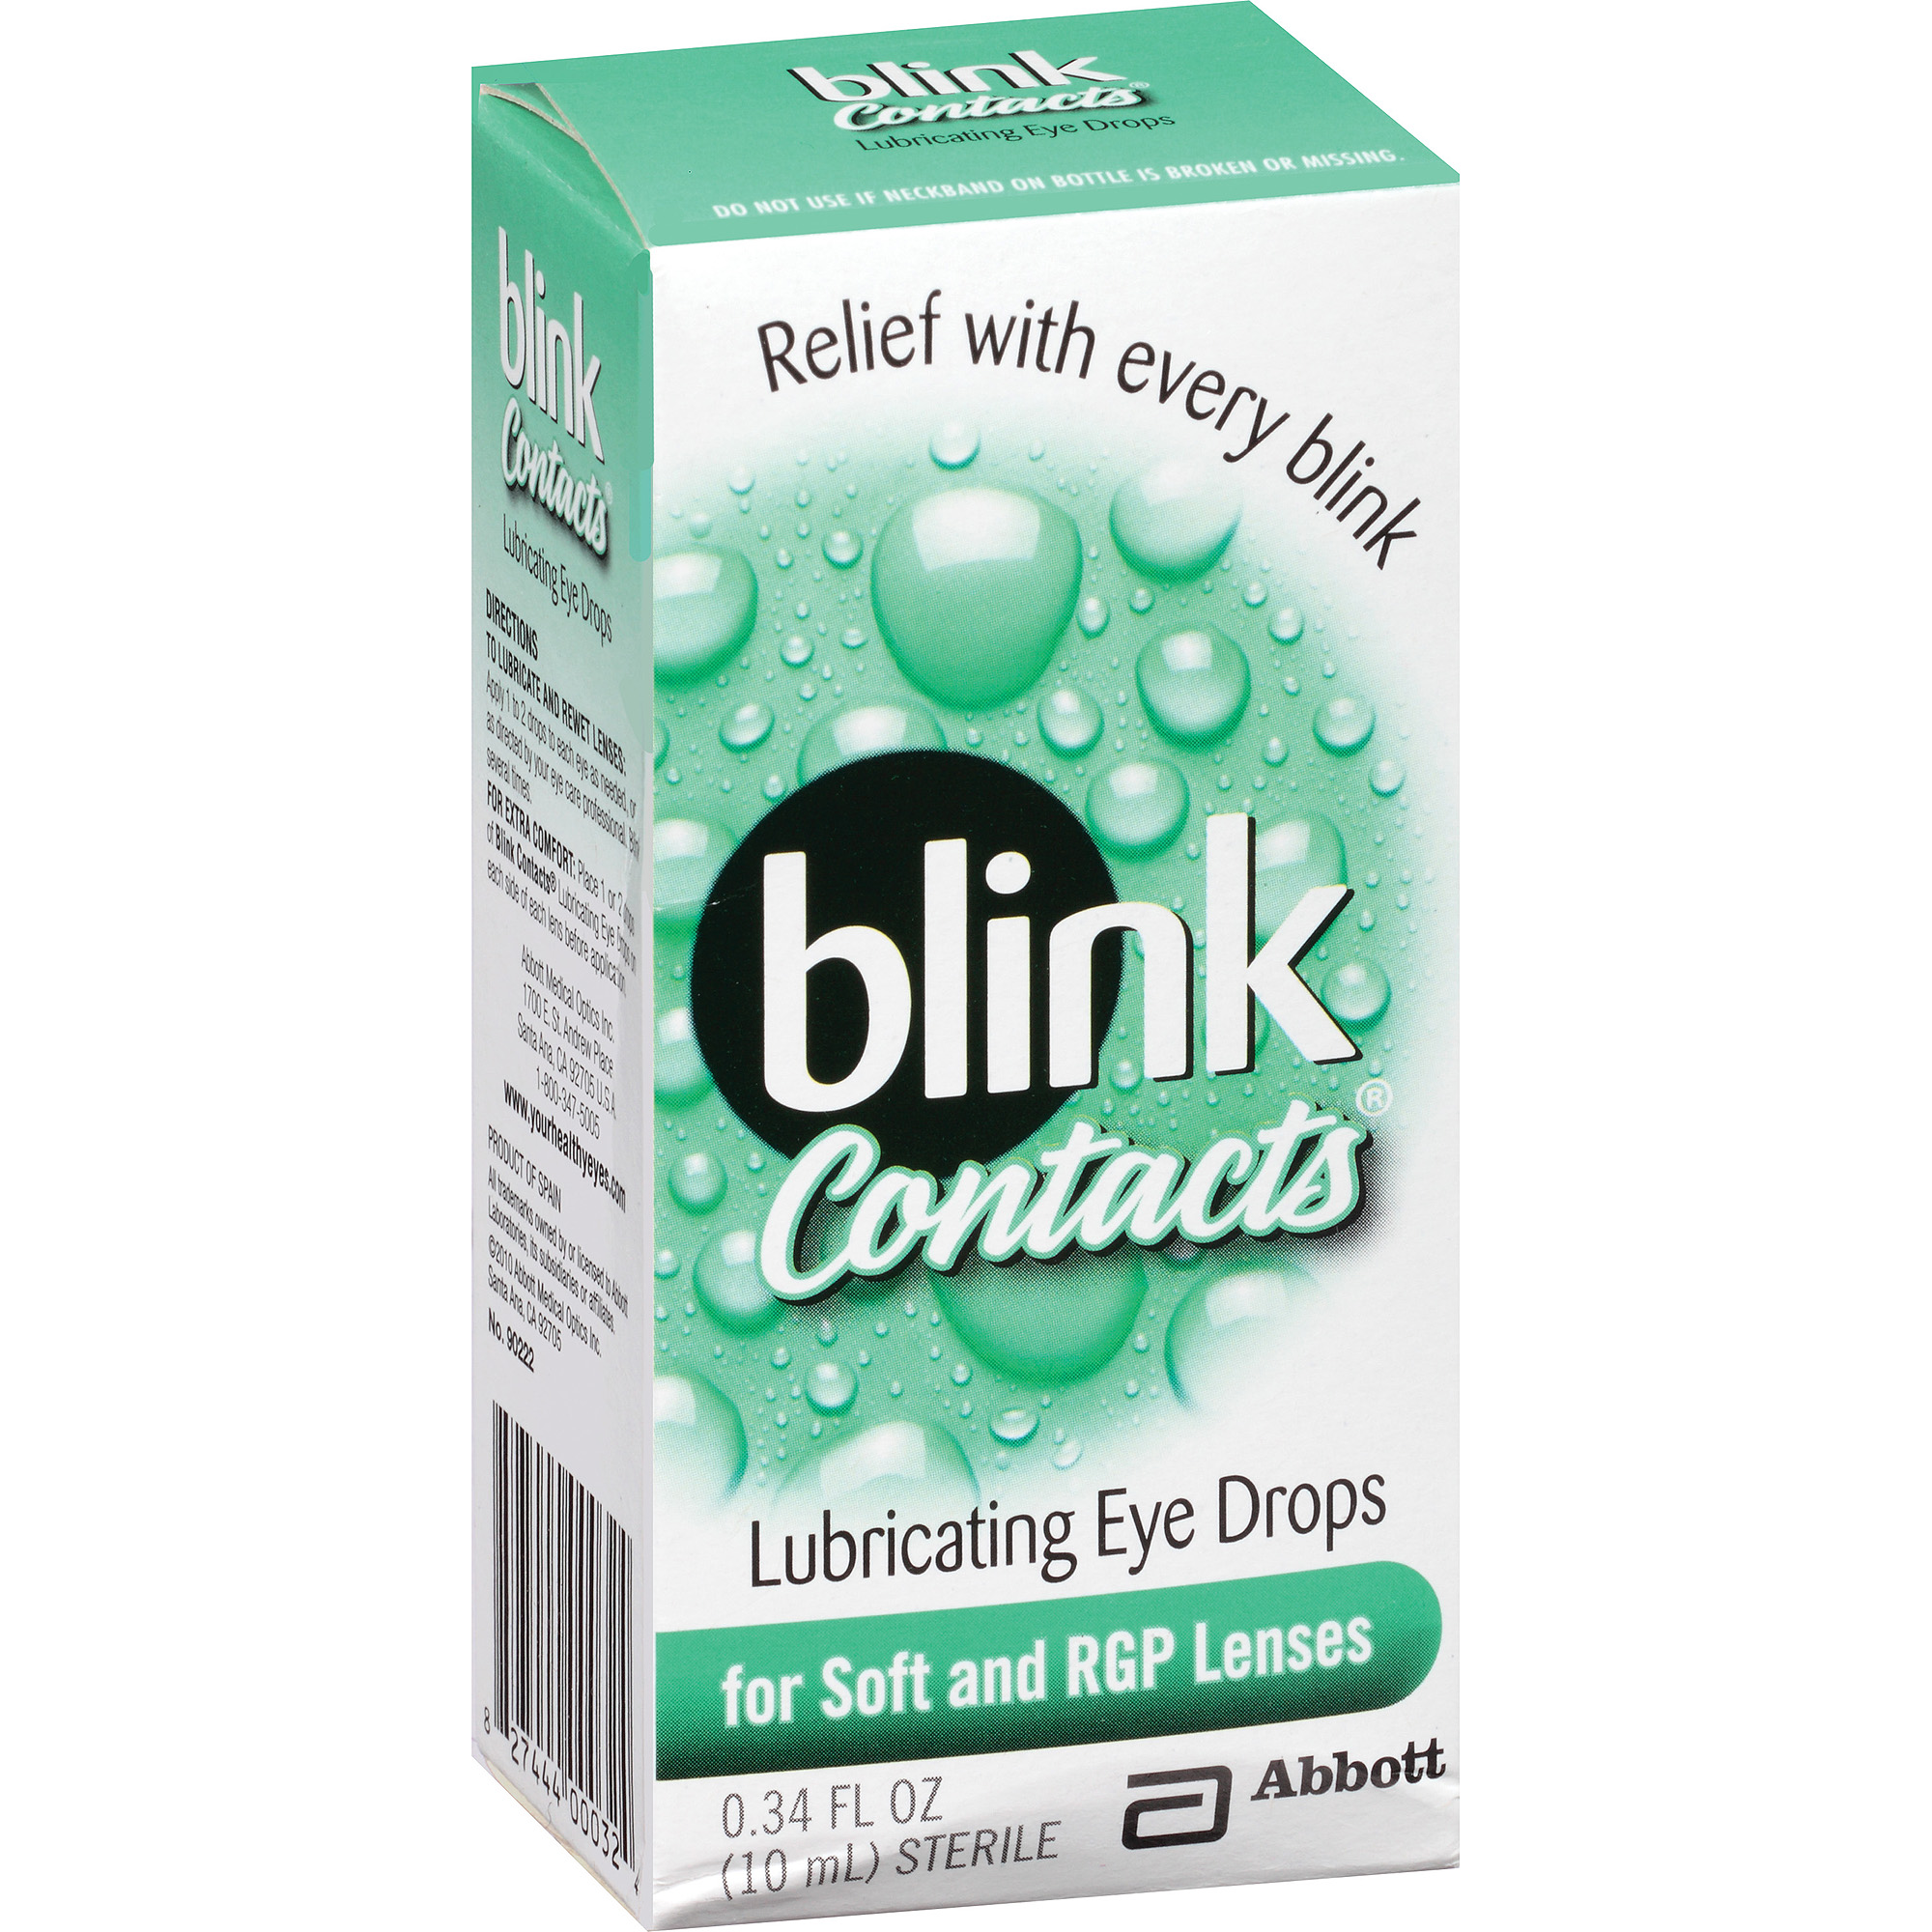 Blink Contacts Lubricating Eye Drops, 0.34 fl oz